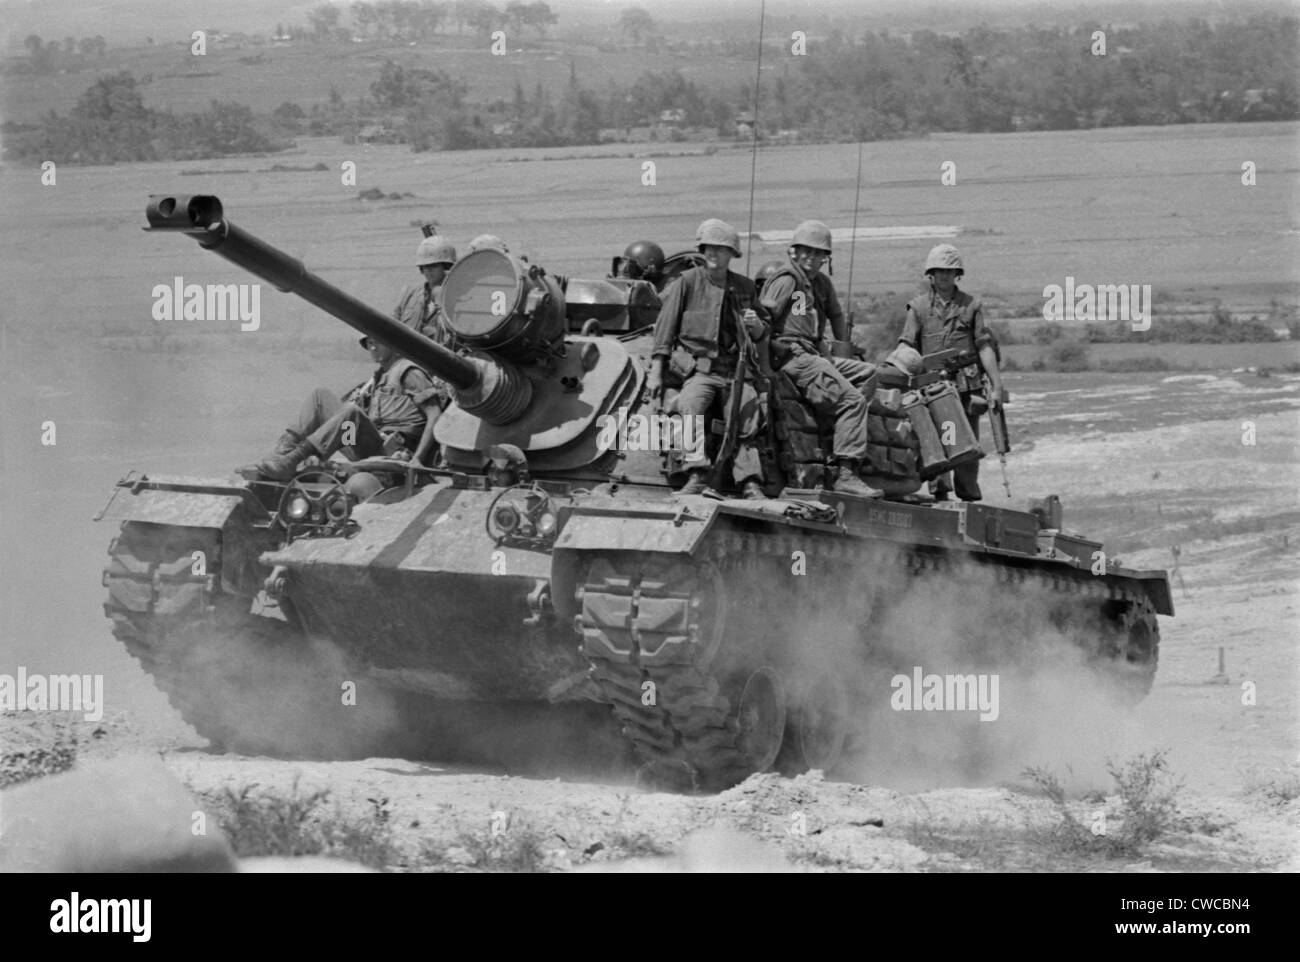 Vietnam war us marines riding on an m 48 tank in south vietnam vietnam war us marines riding on an m 48 tank in south vietnam 1966 sciox Image collections